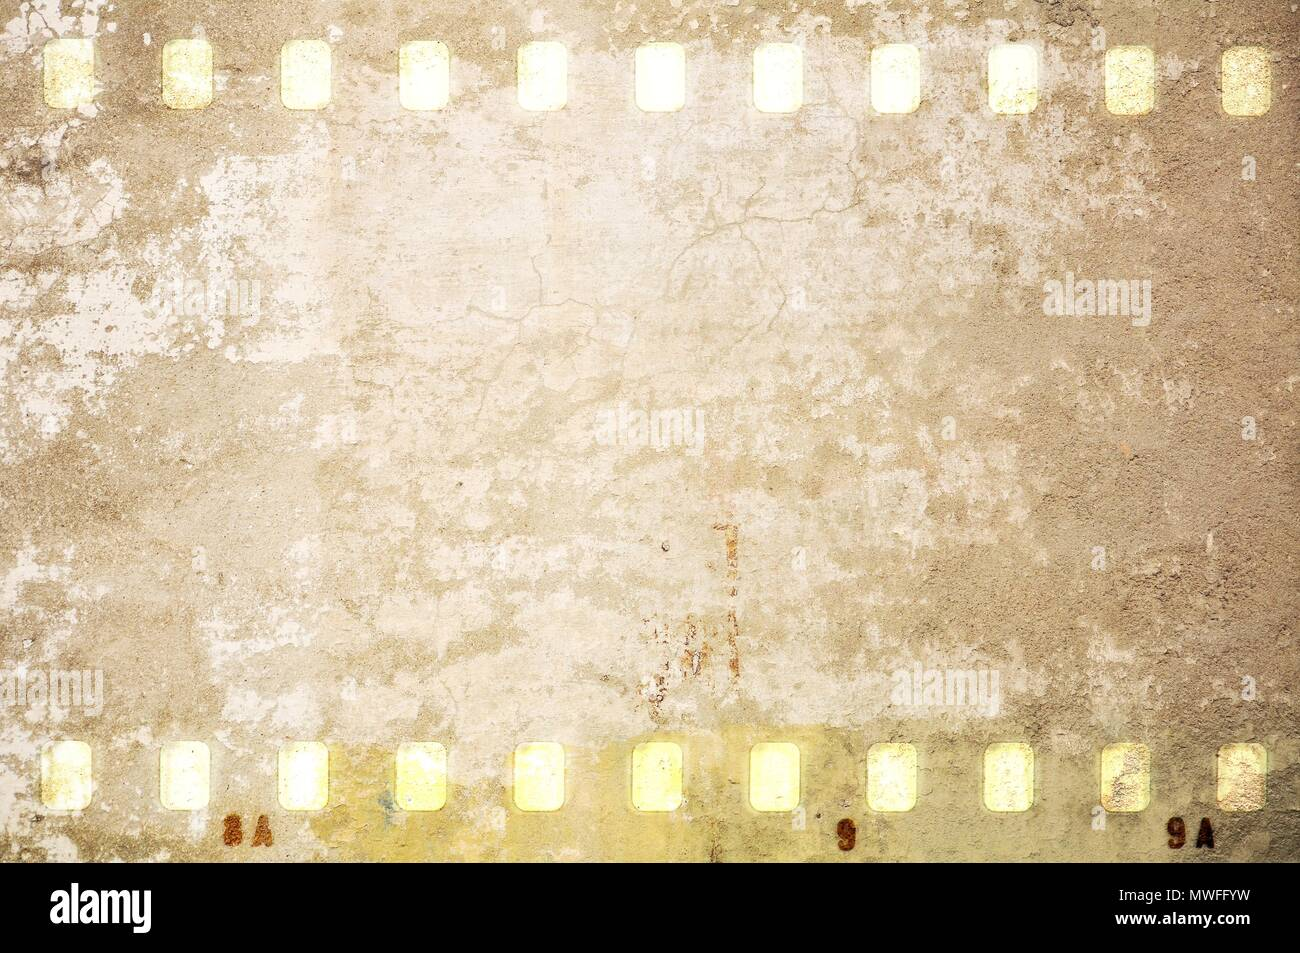 Grunge dripping cracked film strip frame in sepia tones. Wall surface. - Stock Image